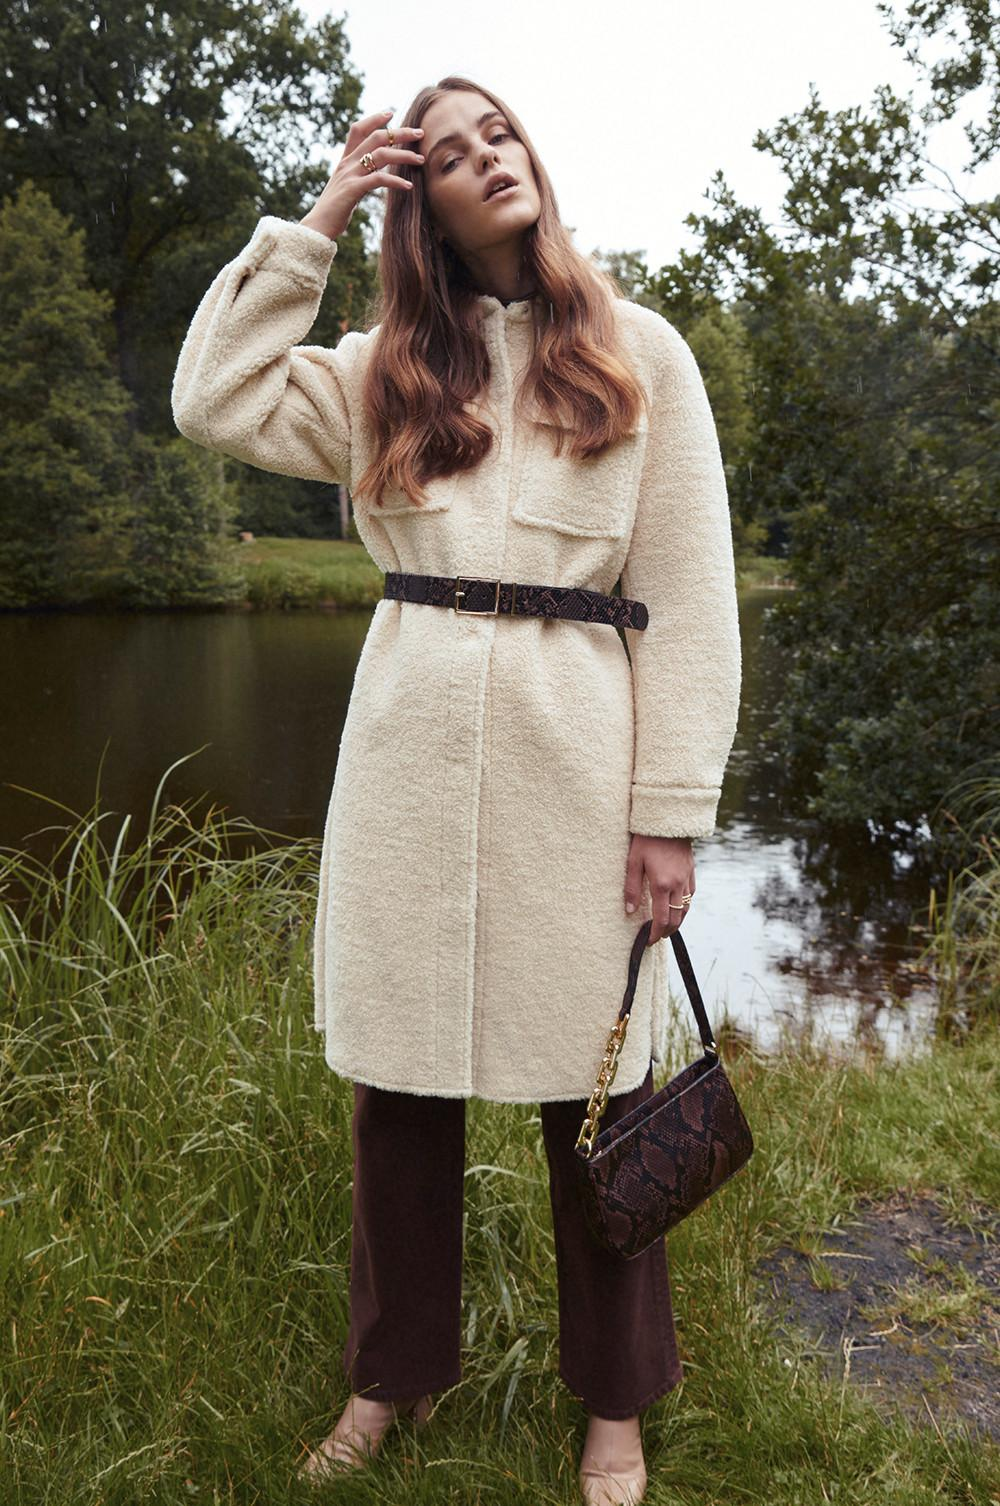 model wears coat with belt over and matching bag